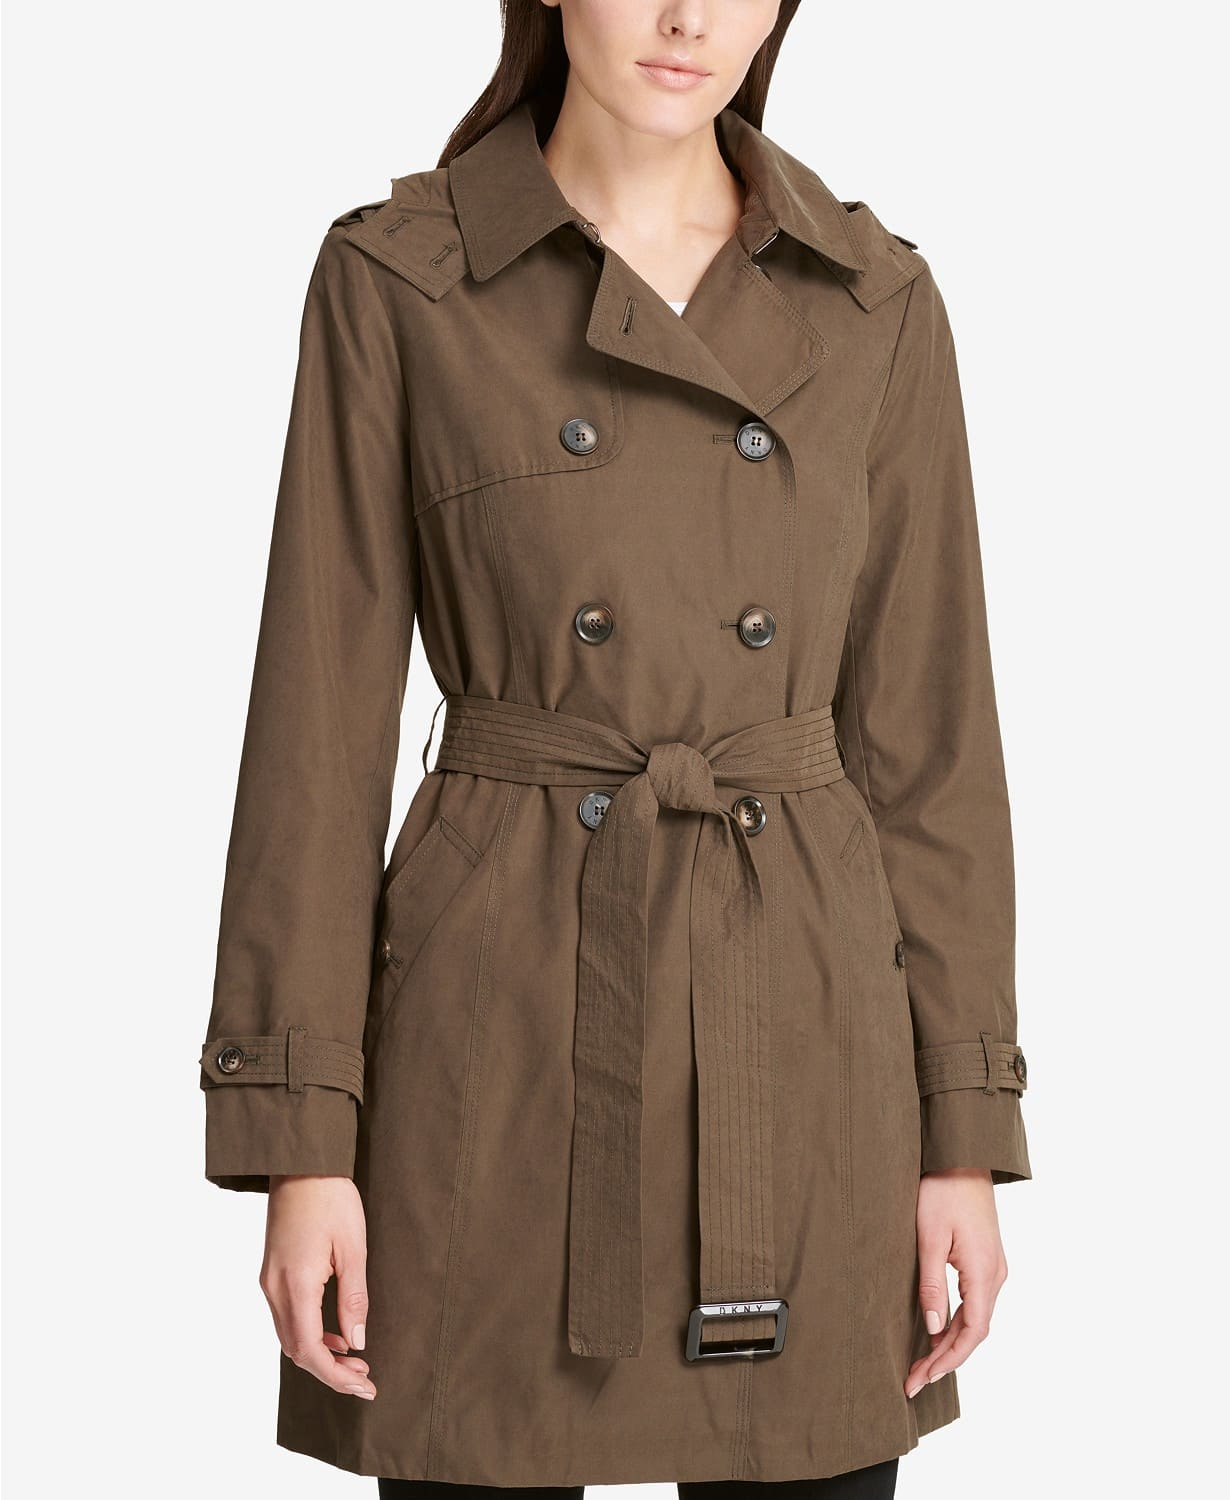 button that match coat fabric on a trench coat